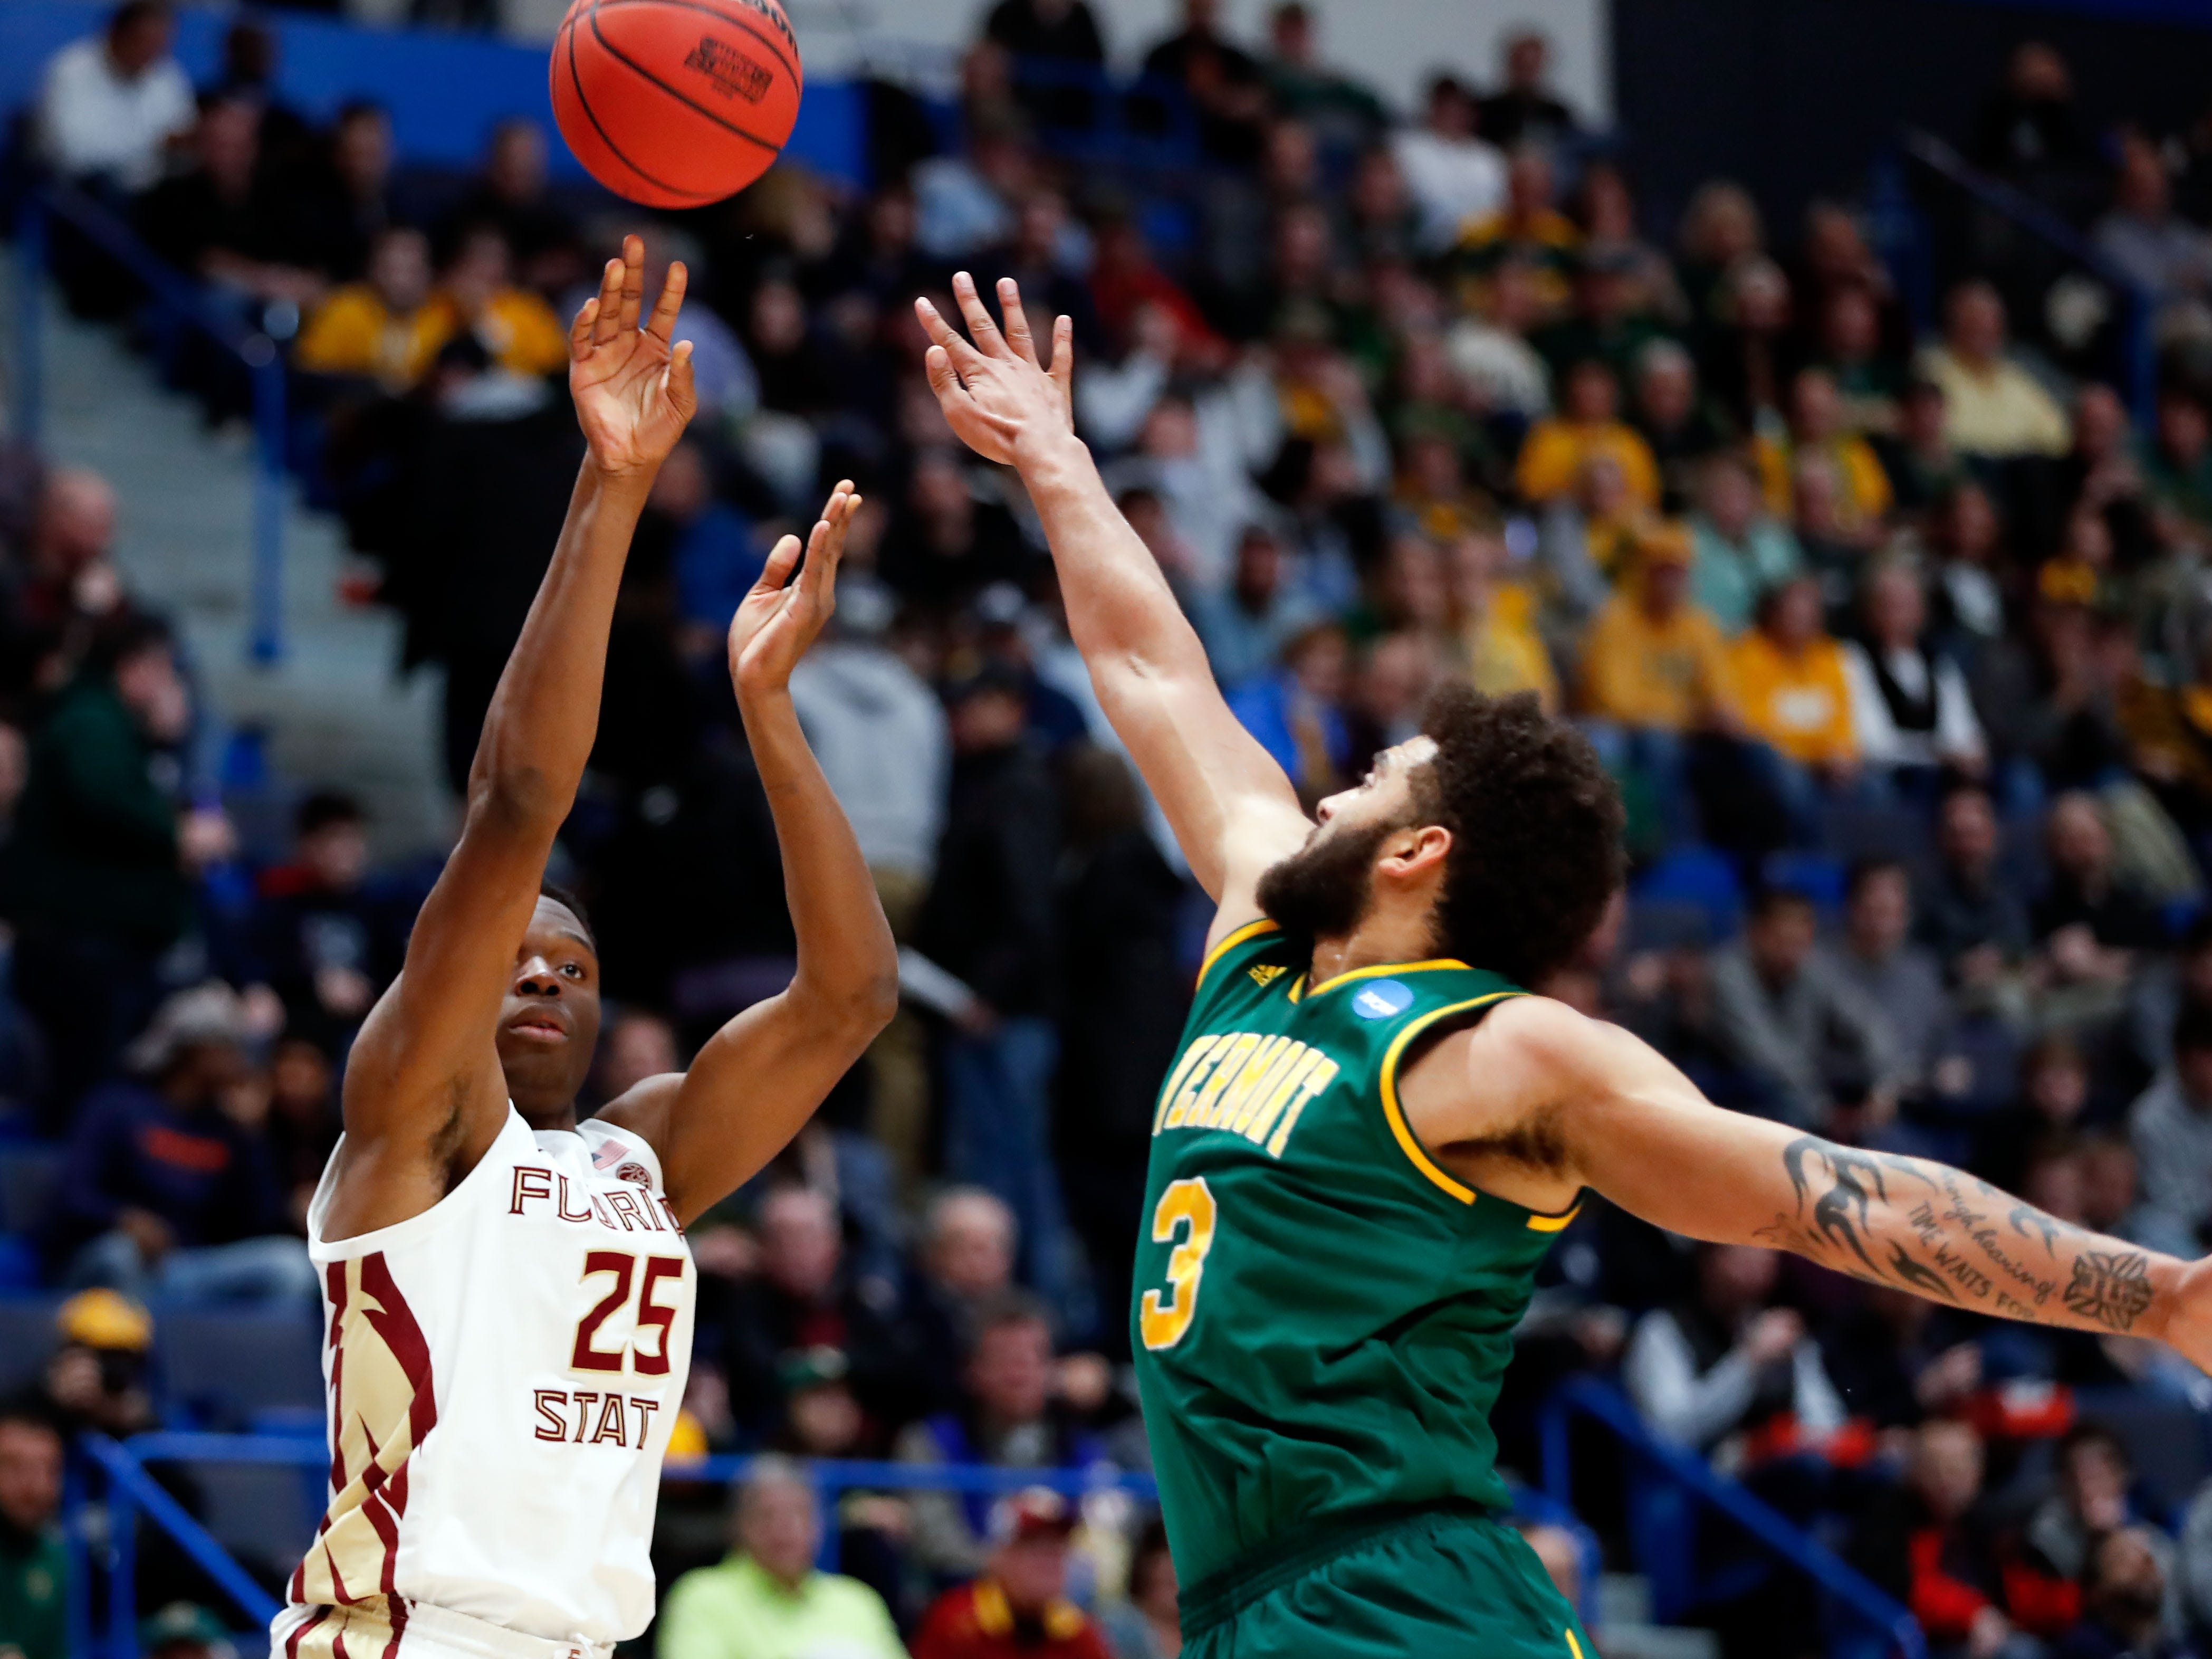 Mar 21, 2019; Hartford, CT, USA; Florida State Seminoles forward Mfiondu Kabengele (25) attempts a three point basket in front of Vermont Catamounts forward Anthony Lamb (3) during the first half of a game in the first round of the 2019 NCAA Tournament at XL Center. Mandatory Credit: David Butler II-USA TODAY Sports